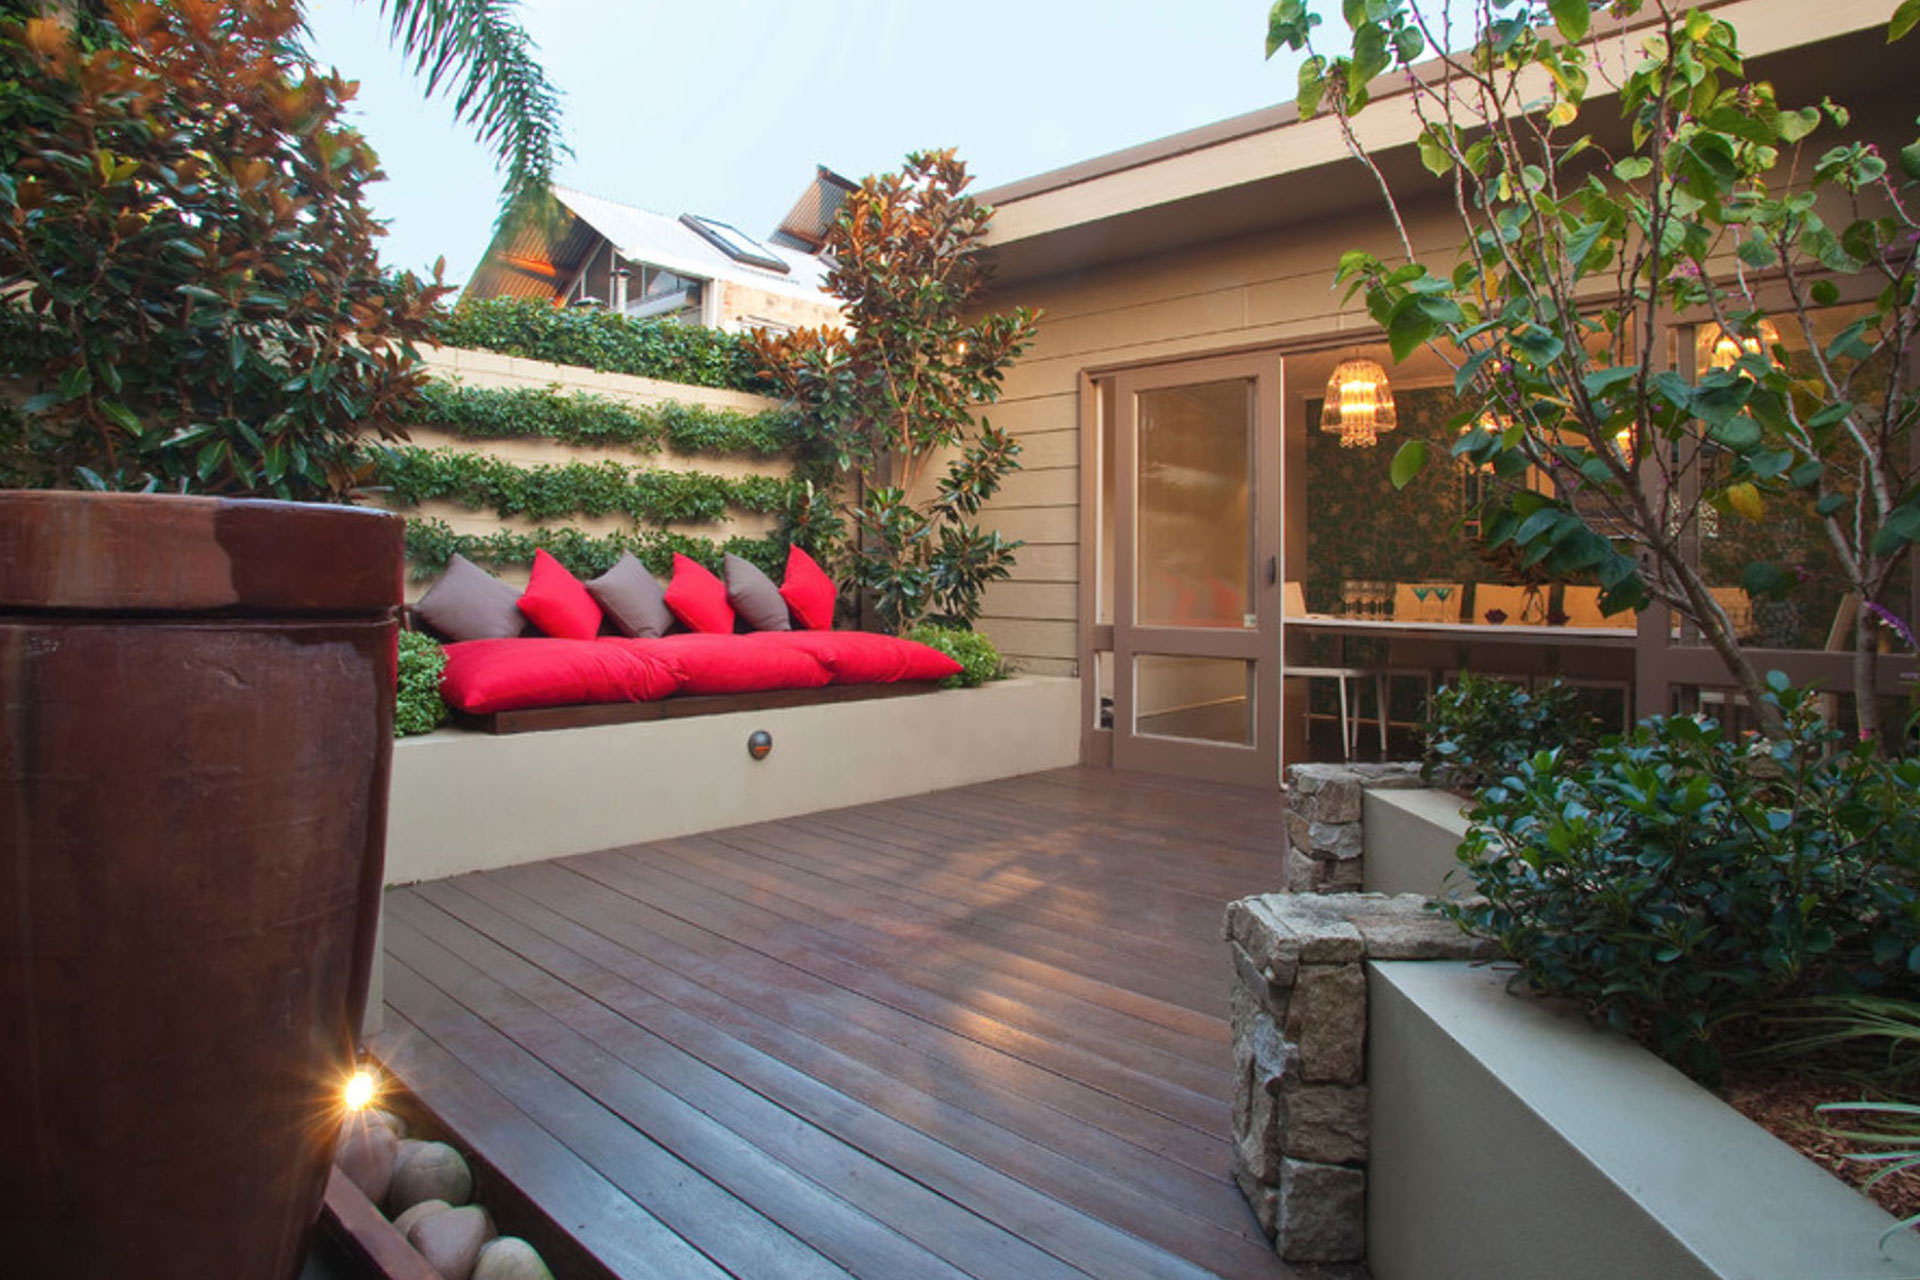 5 ideas for making a big impact in a small outdoor space for Outdoor garden ideas for small spaces